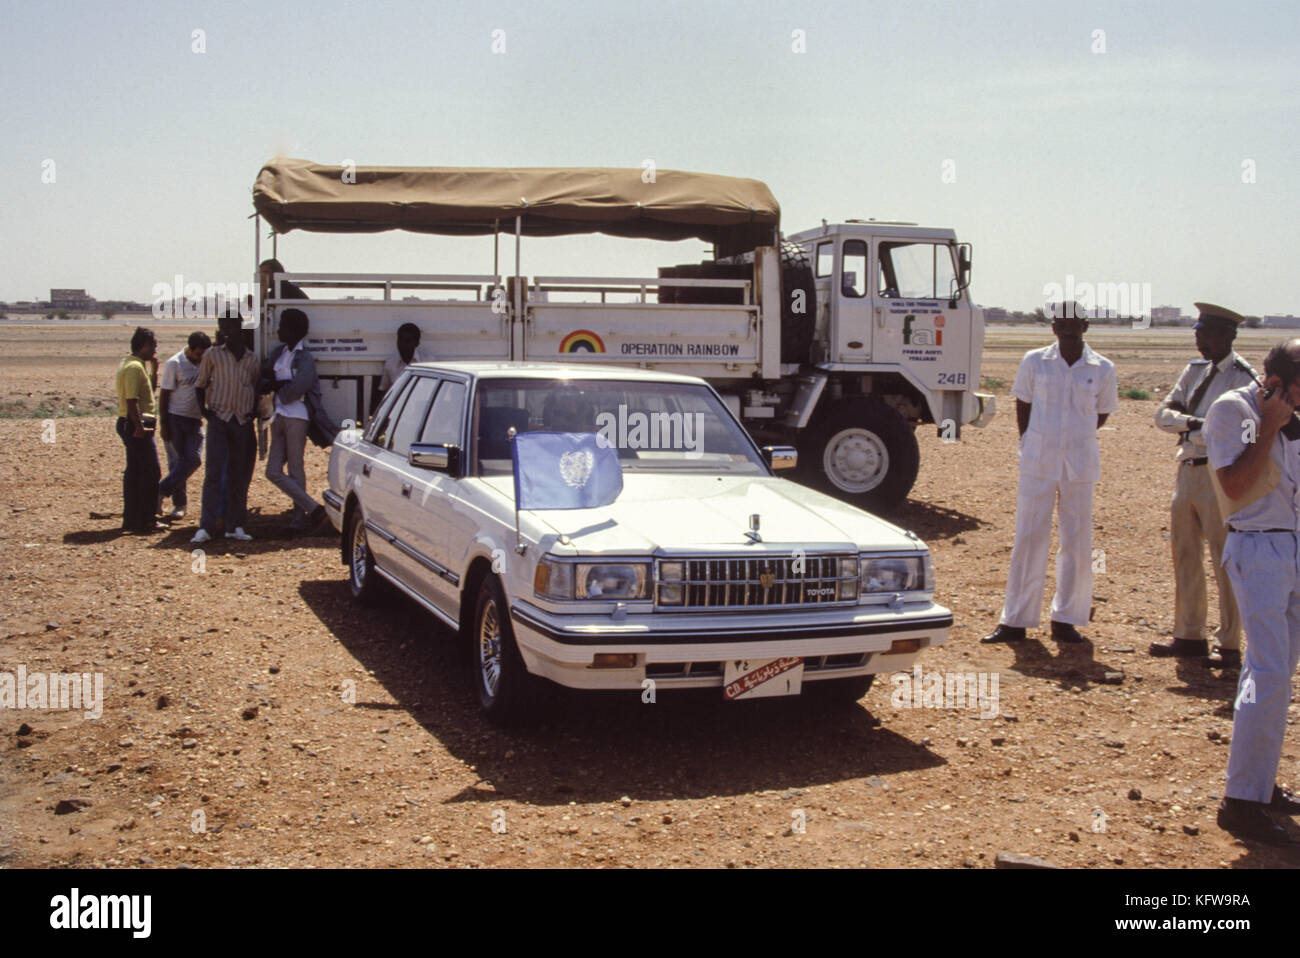 Khartoum, Sudan - September 1986 - A $1 million food airlift relief project for famine victims in war-ravaged southern - Stock Image